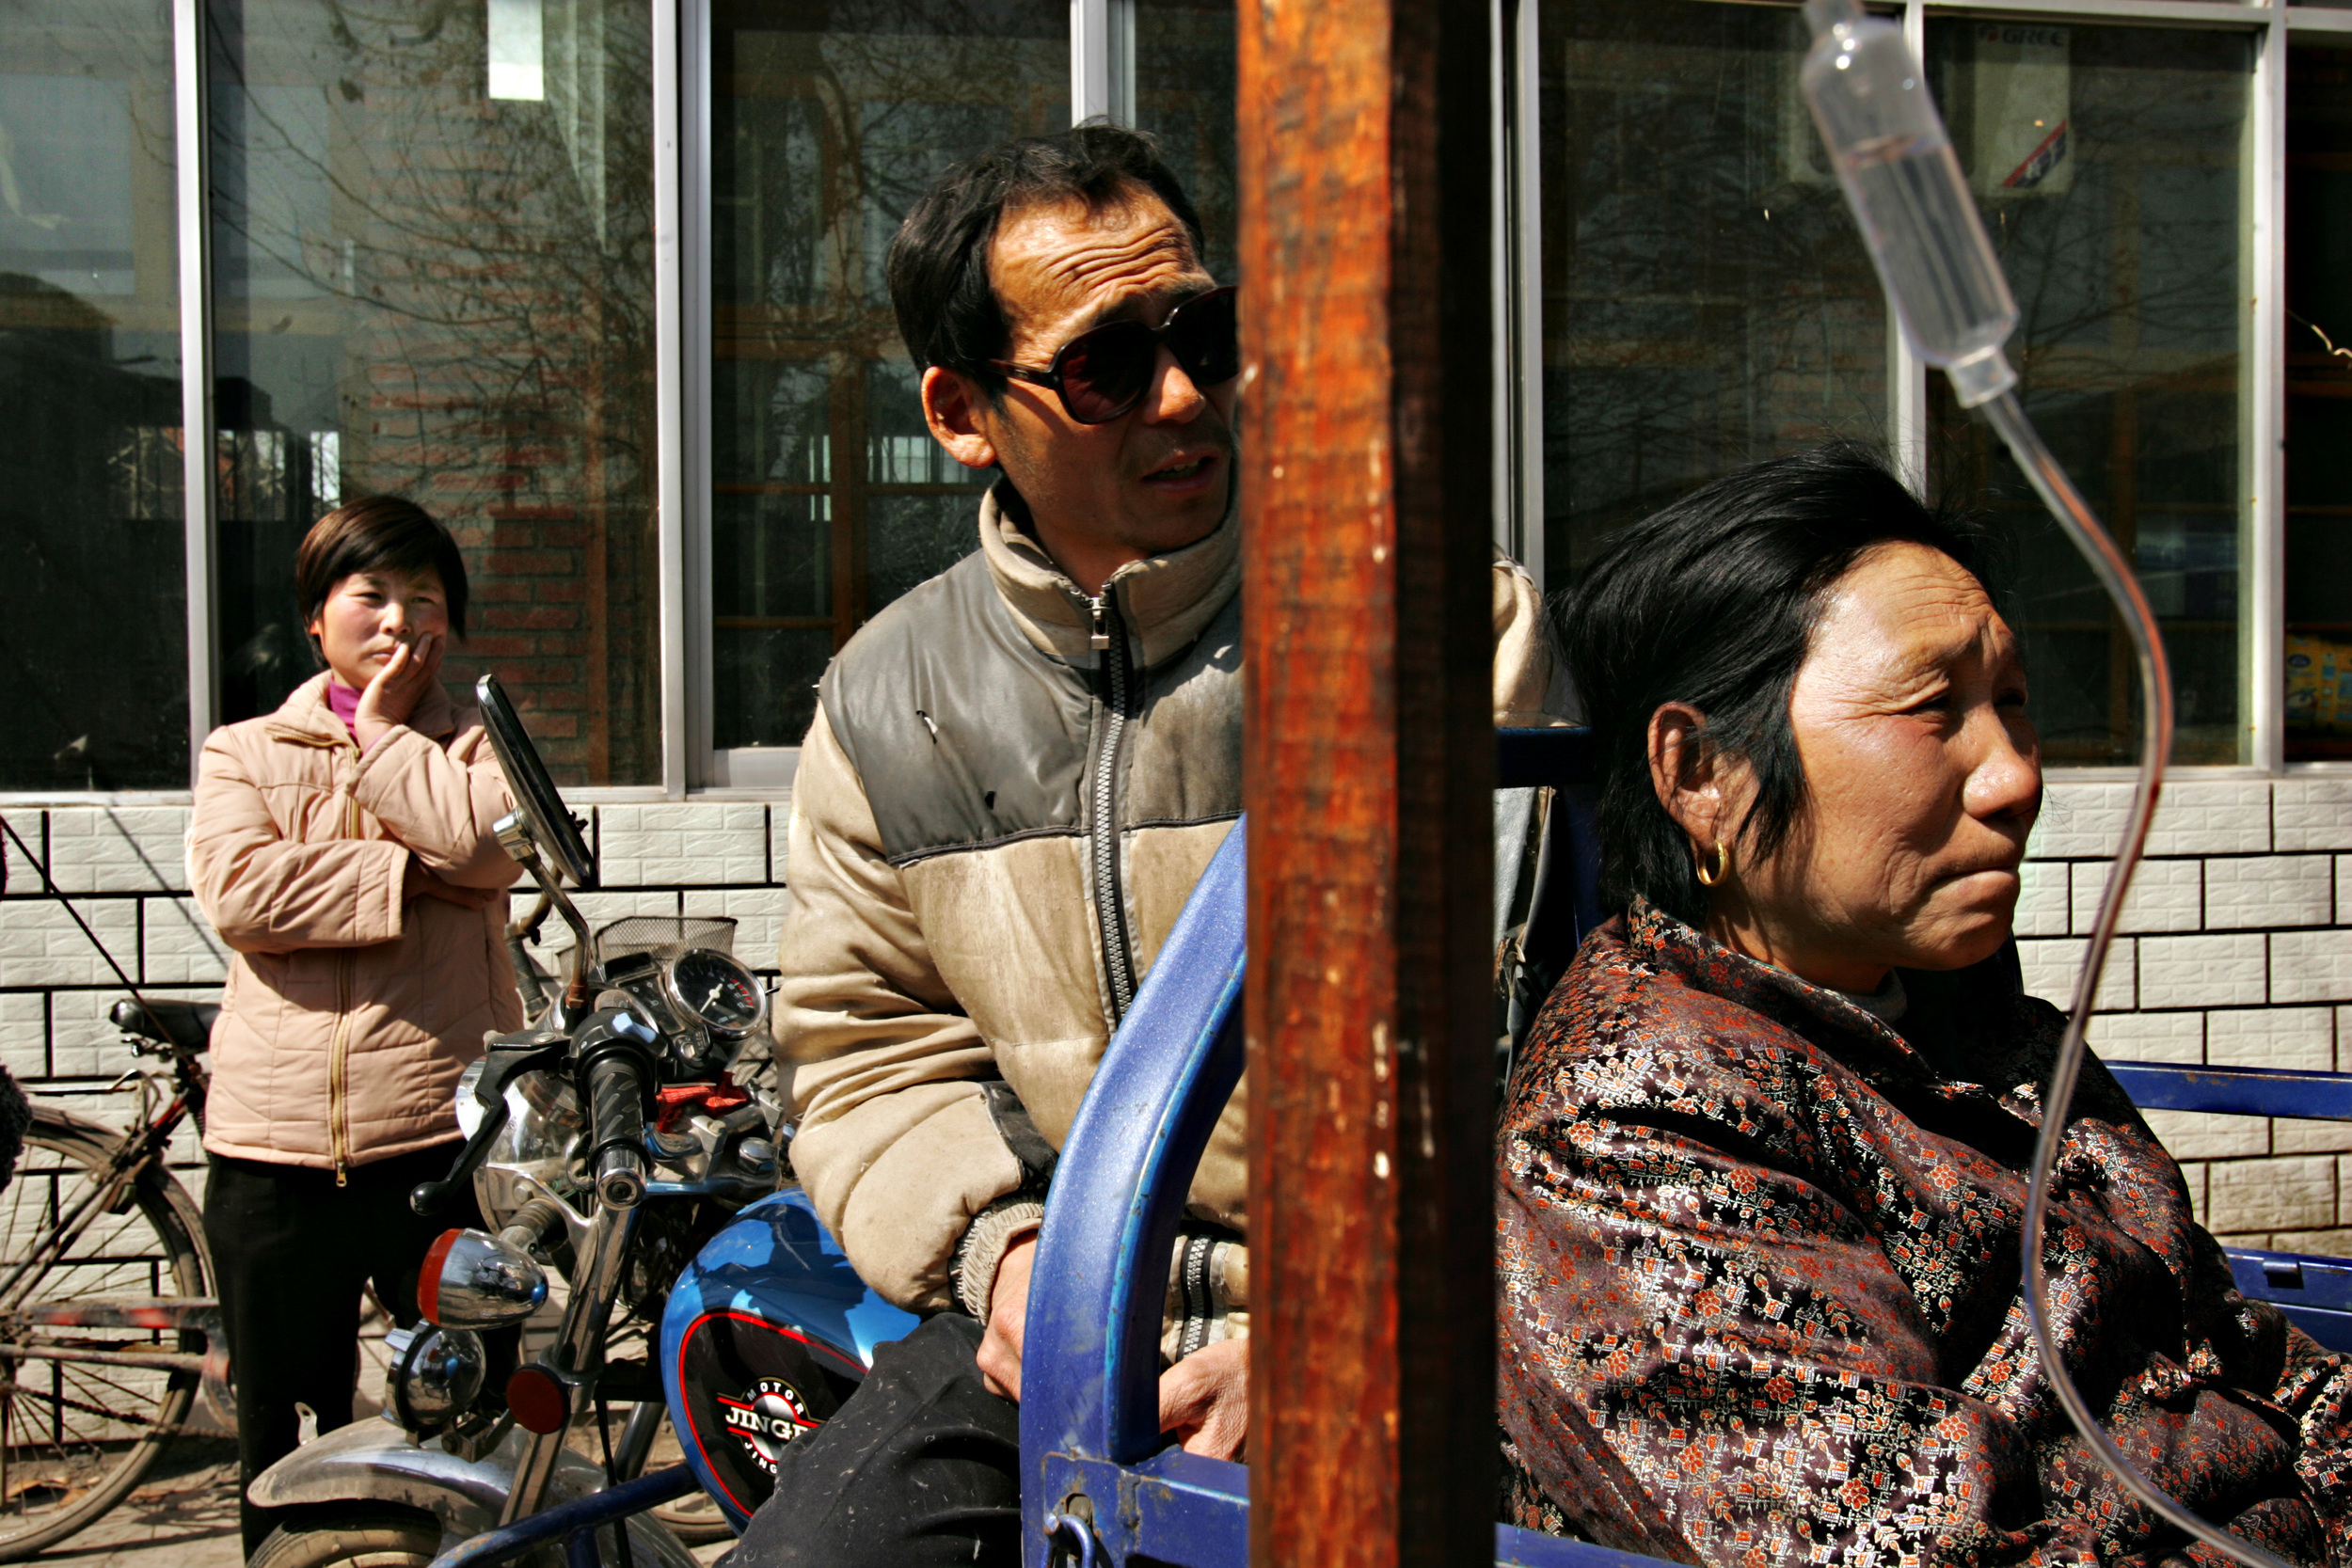 Jia Yumei, 55 (right) , from Sunying Village waits outside of the Cancer Ward of the Shenqiu County Hospital with her daughter and son in law. She has been driven to the hospital on the back of a motorcycle cart and is awaiting treatment for an undisclosed illness.